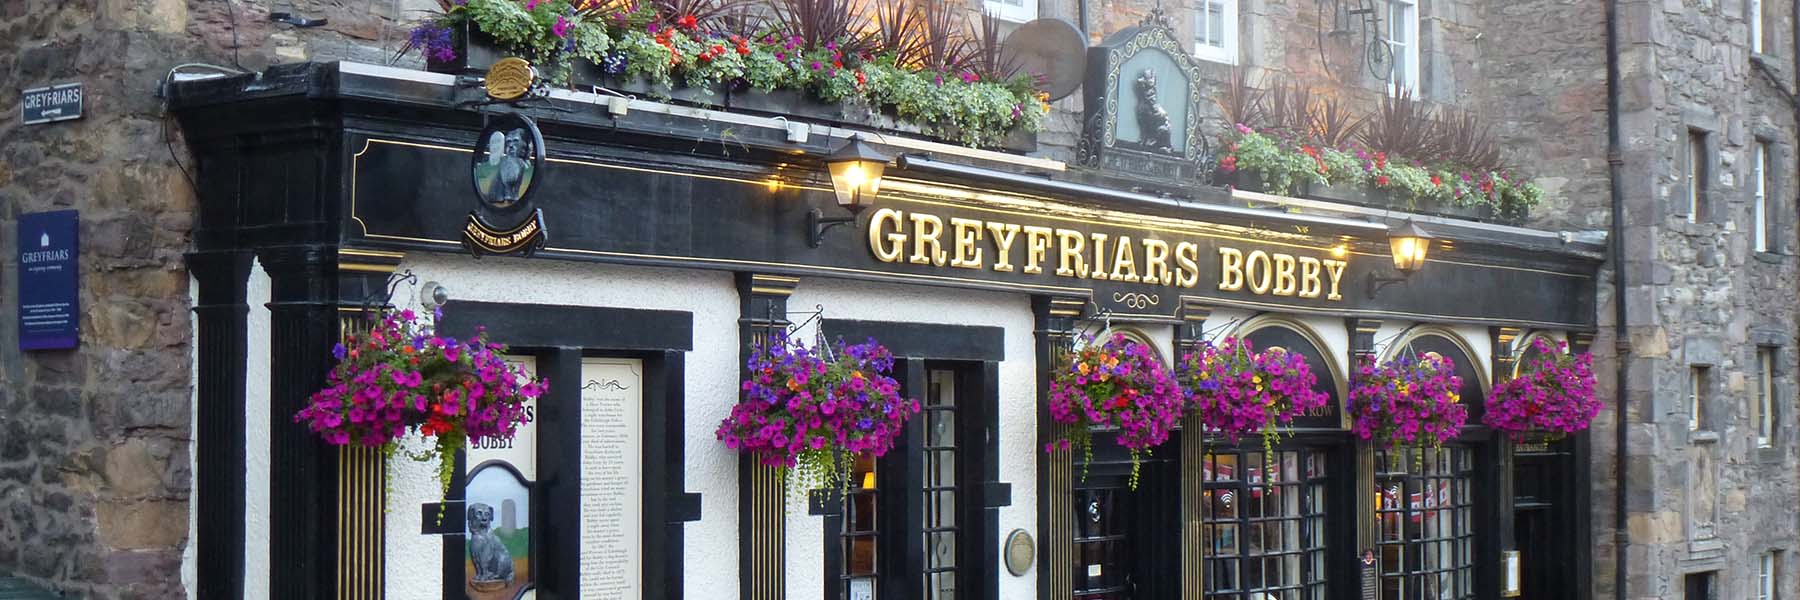 Bright blooming hanging baskets create a warm welcome at the famous Greyfriars Bobby pub in Edinburgh's old town